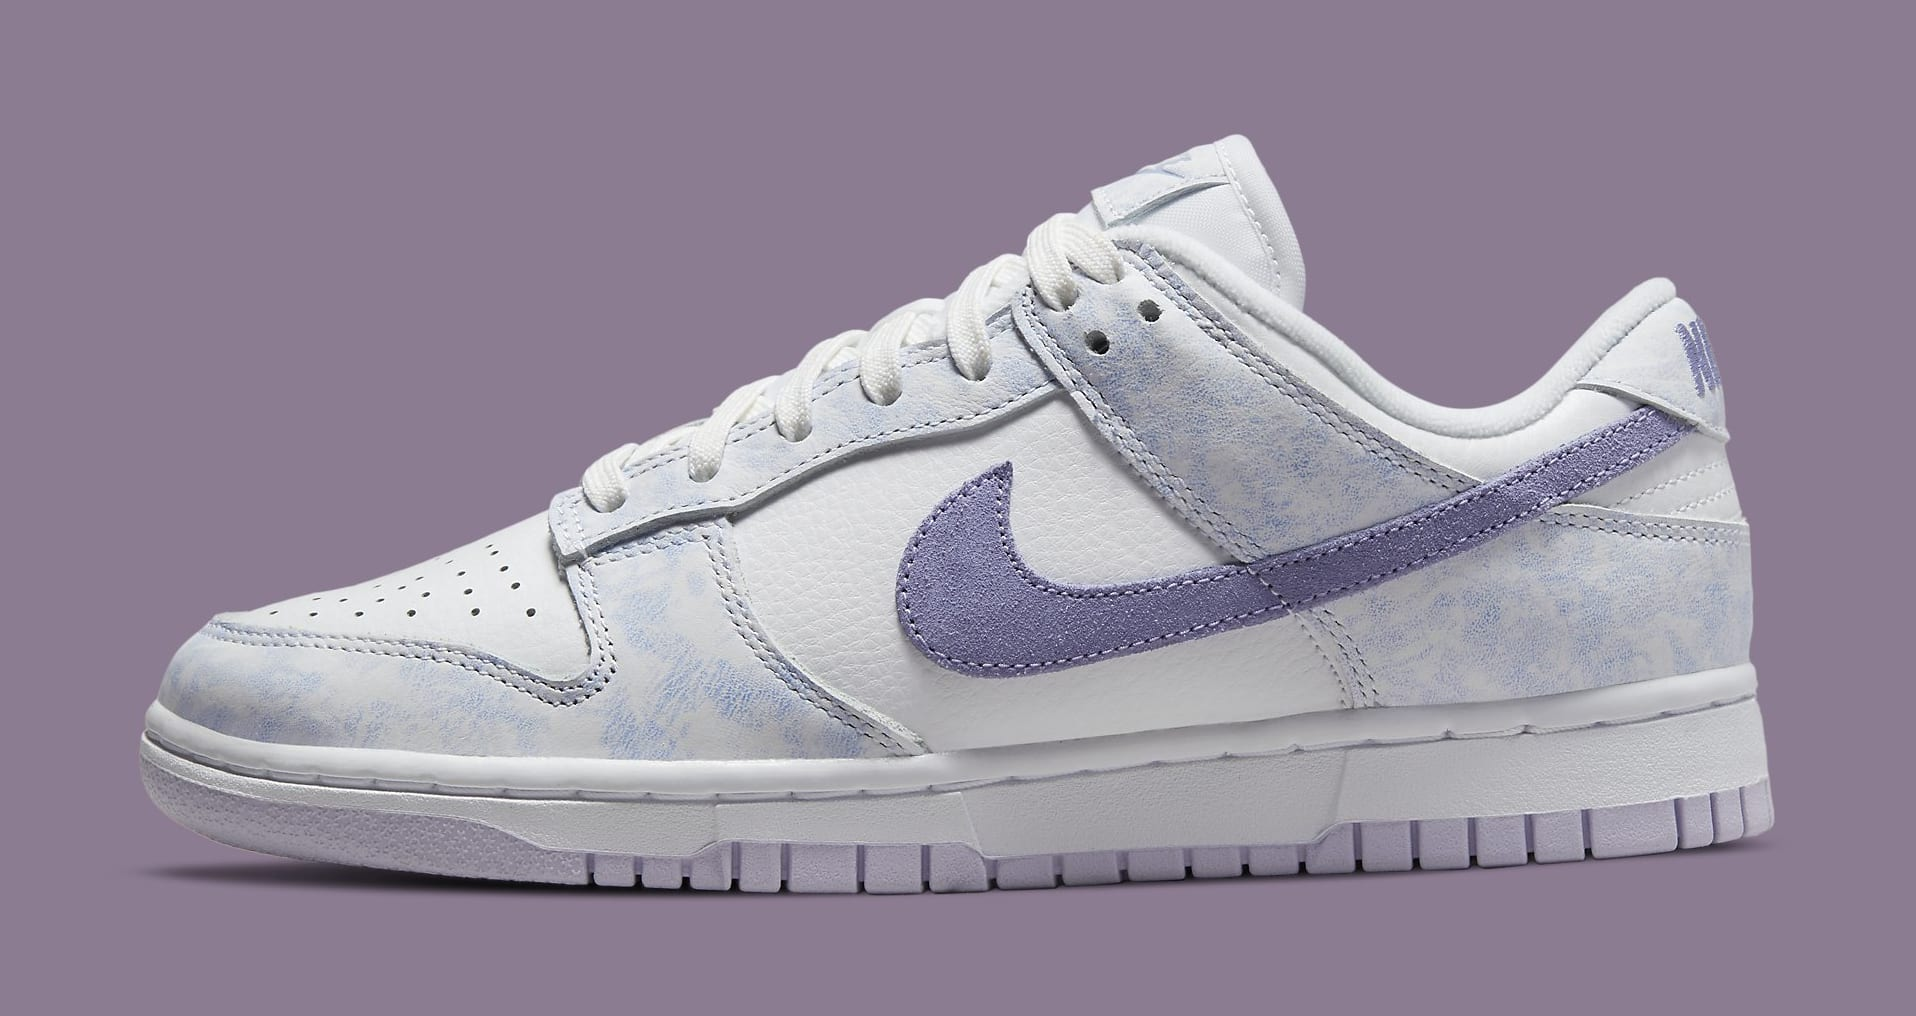 Nike Dunk Low Women's 'Purple Pulse' DM9467-500 Lateral